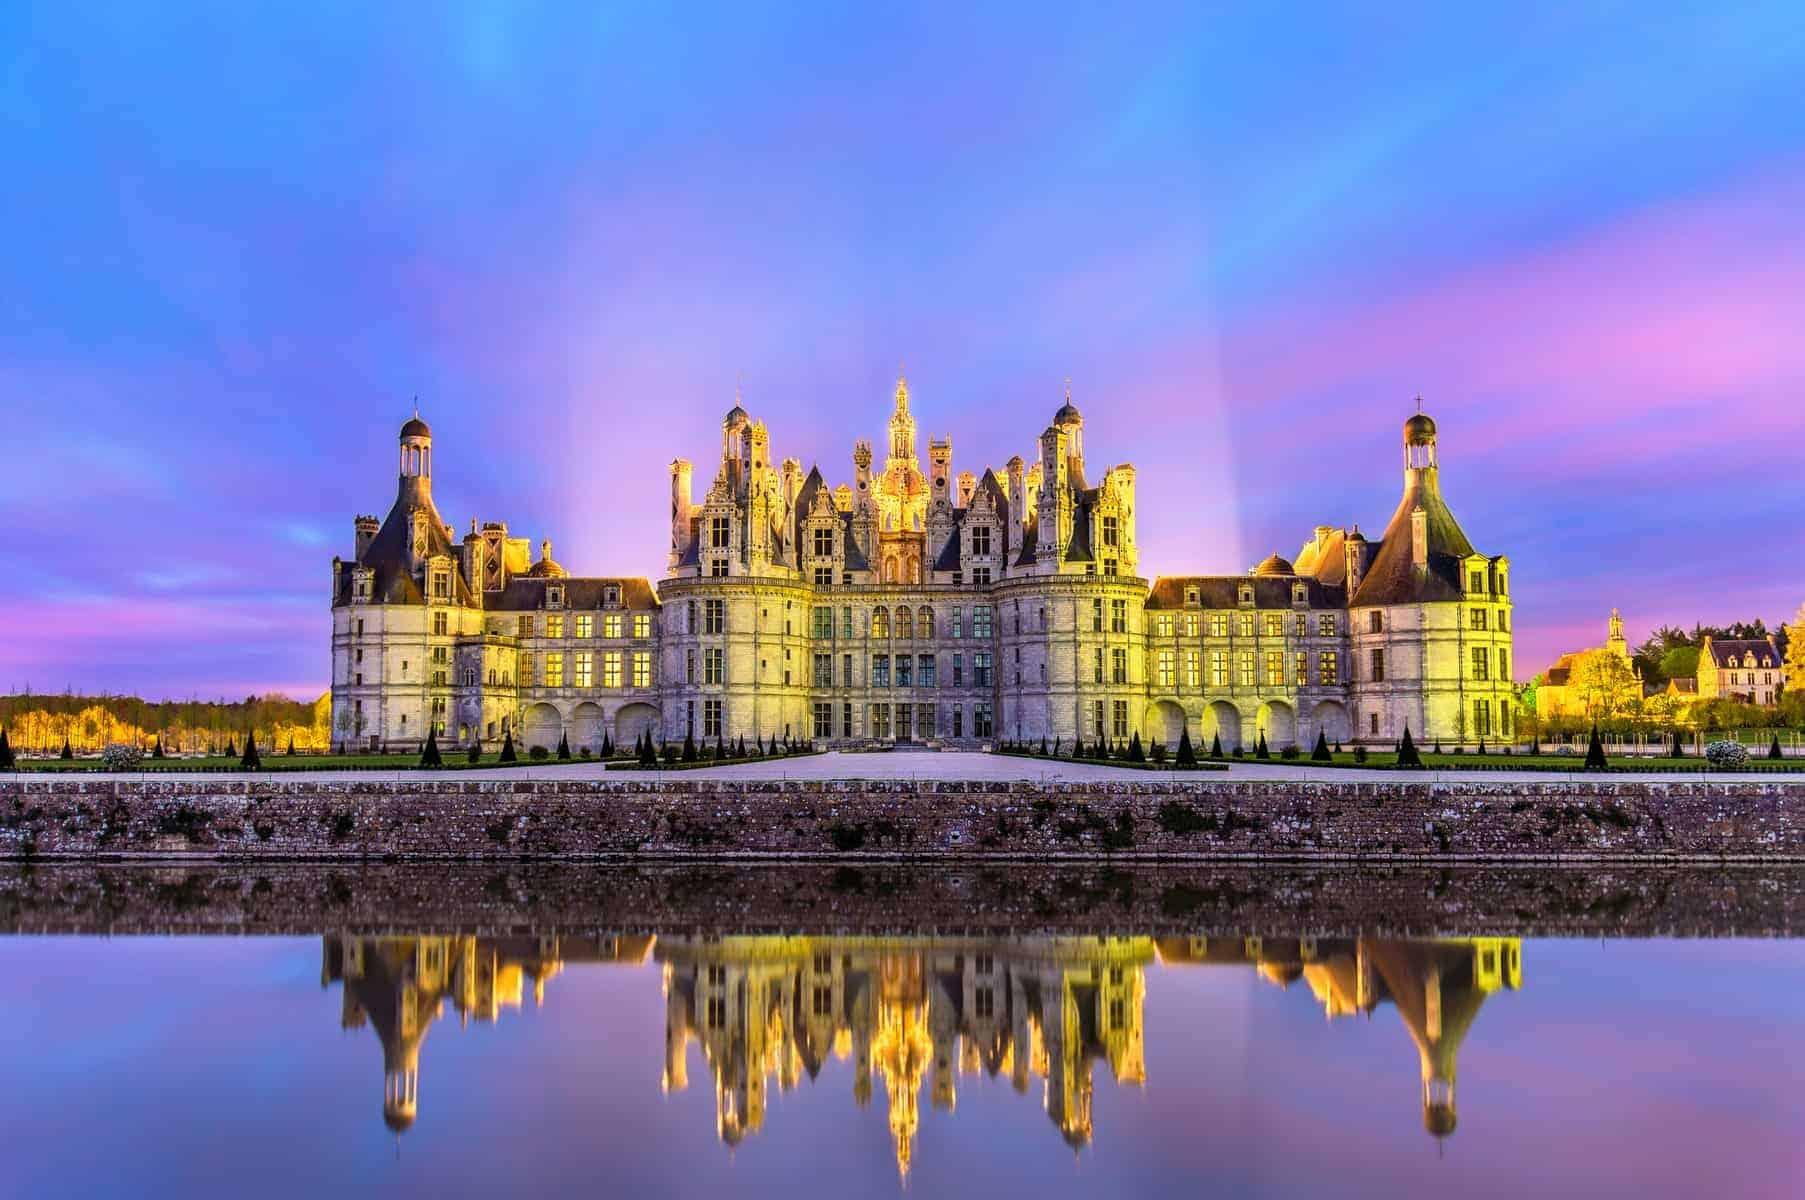 Chateau de Chambord, the largest castle in the Loire Valley - France